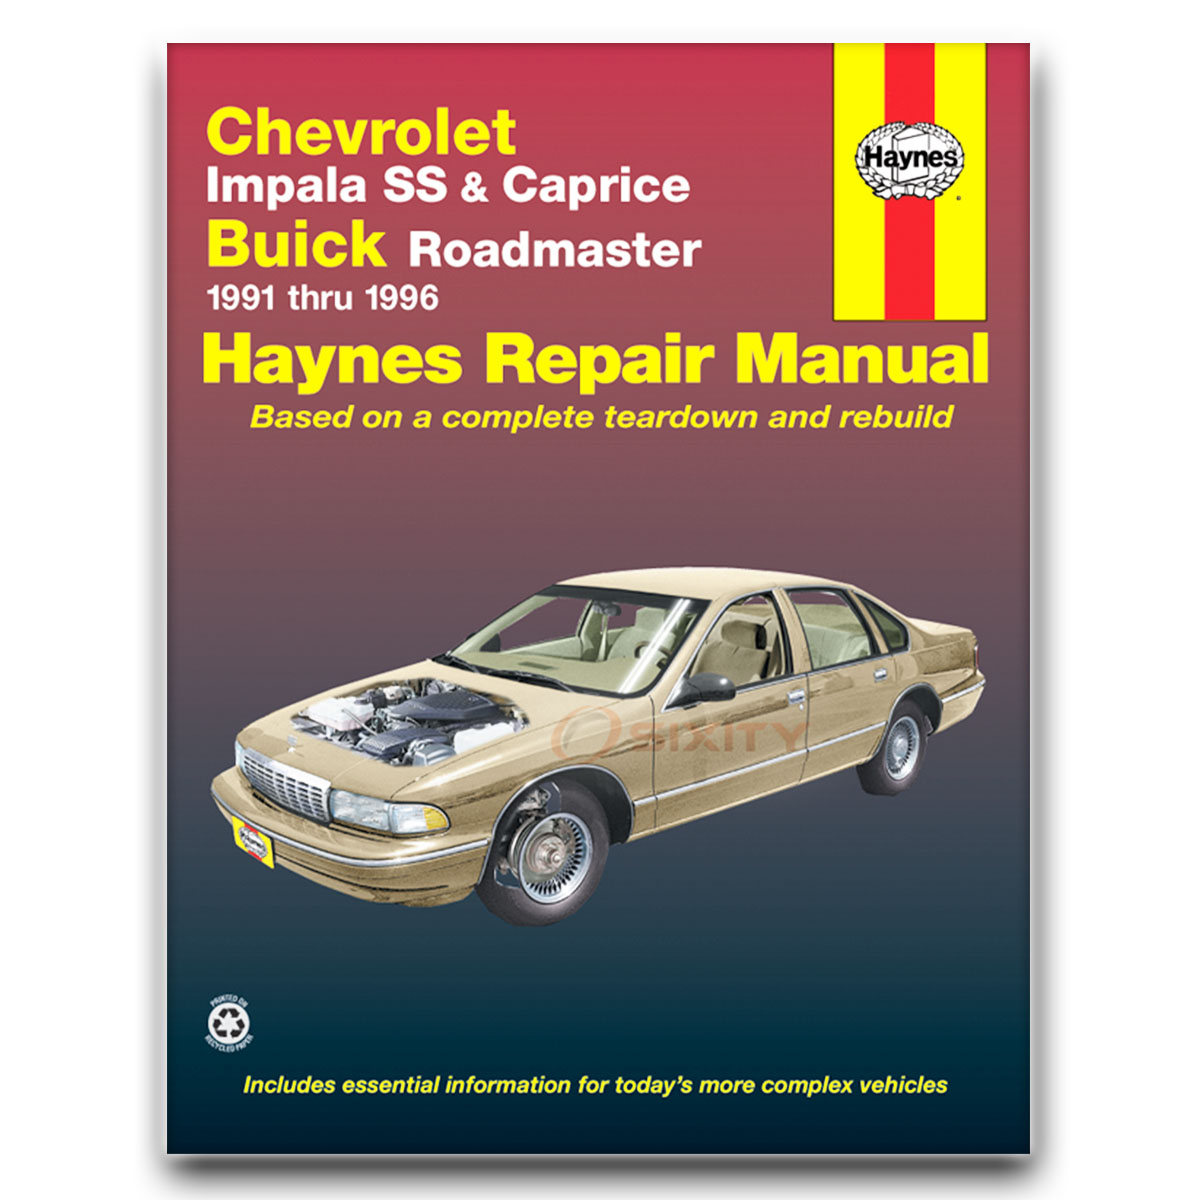 chevy caprice haynes repair manual classic base ltz ls shop service rh ebay com Chevy Caprice Classic Booklet Aftermarket Headlights for 98 Chevy Caprice Wagon